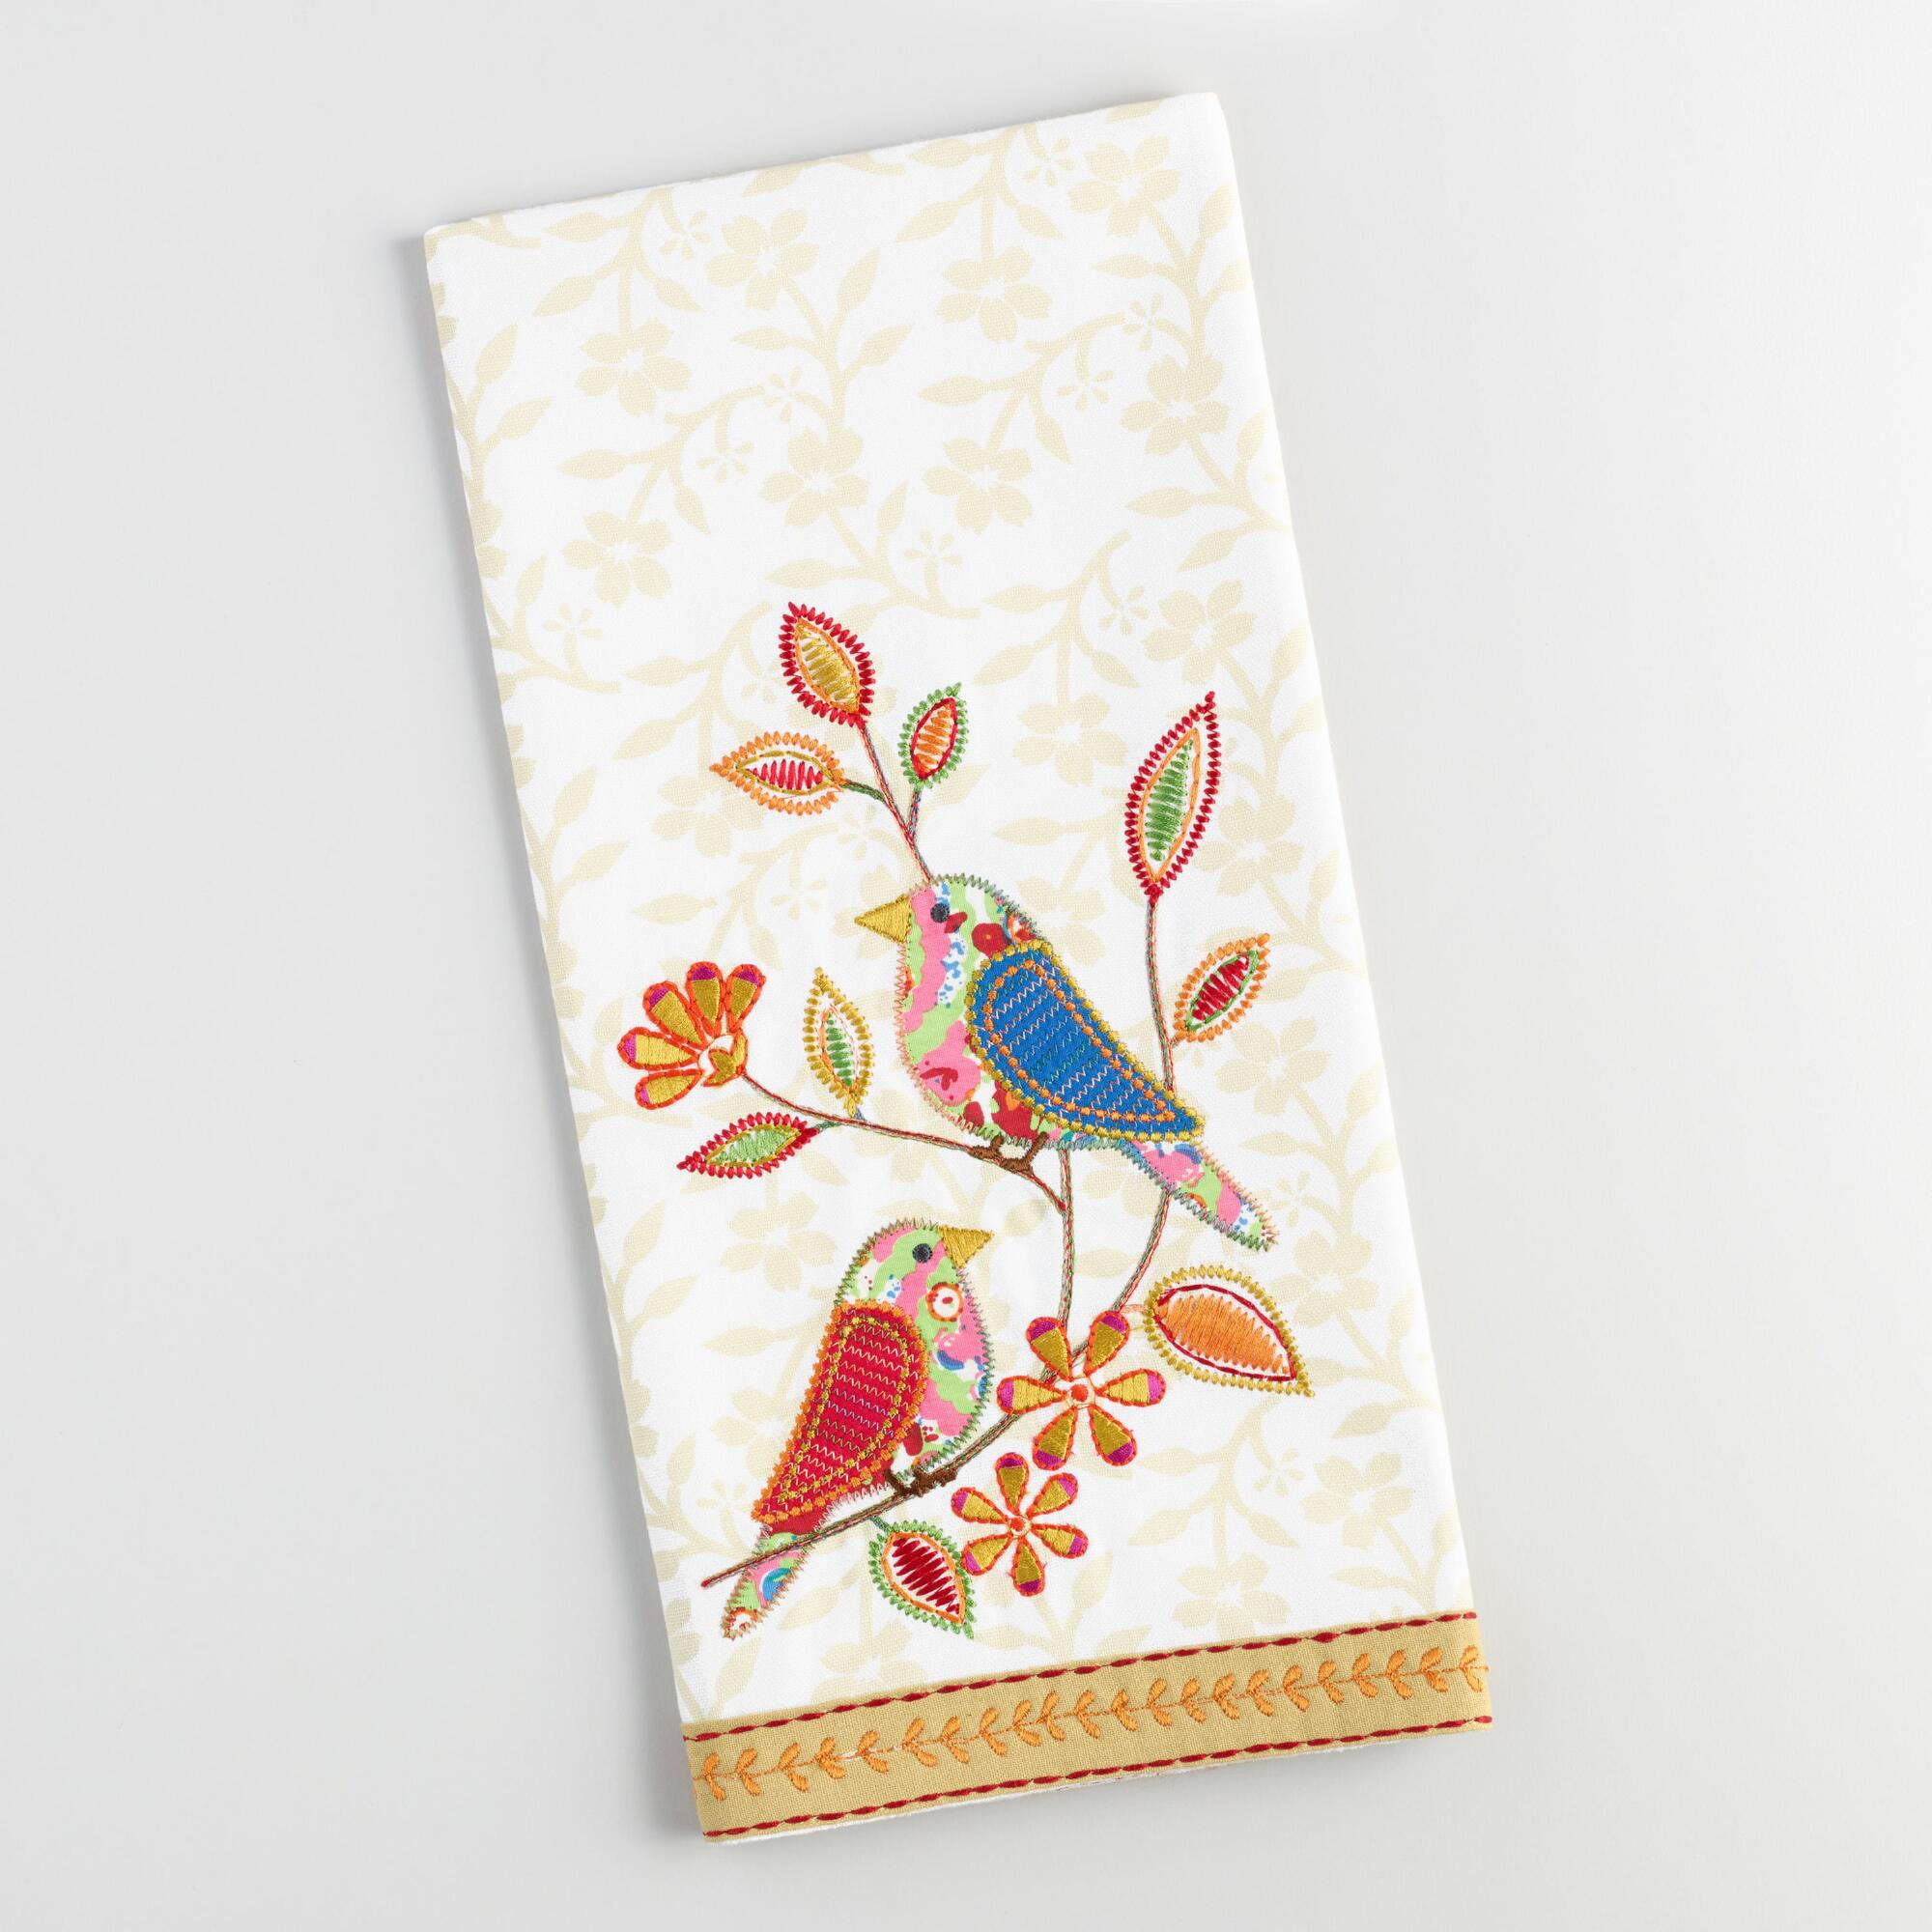 Embroidered Towels Online: Birds On Branch Embroidered Kitchen Towel